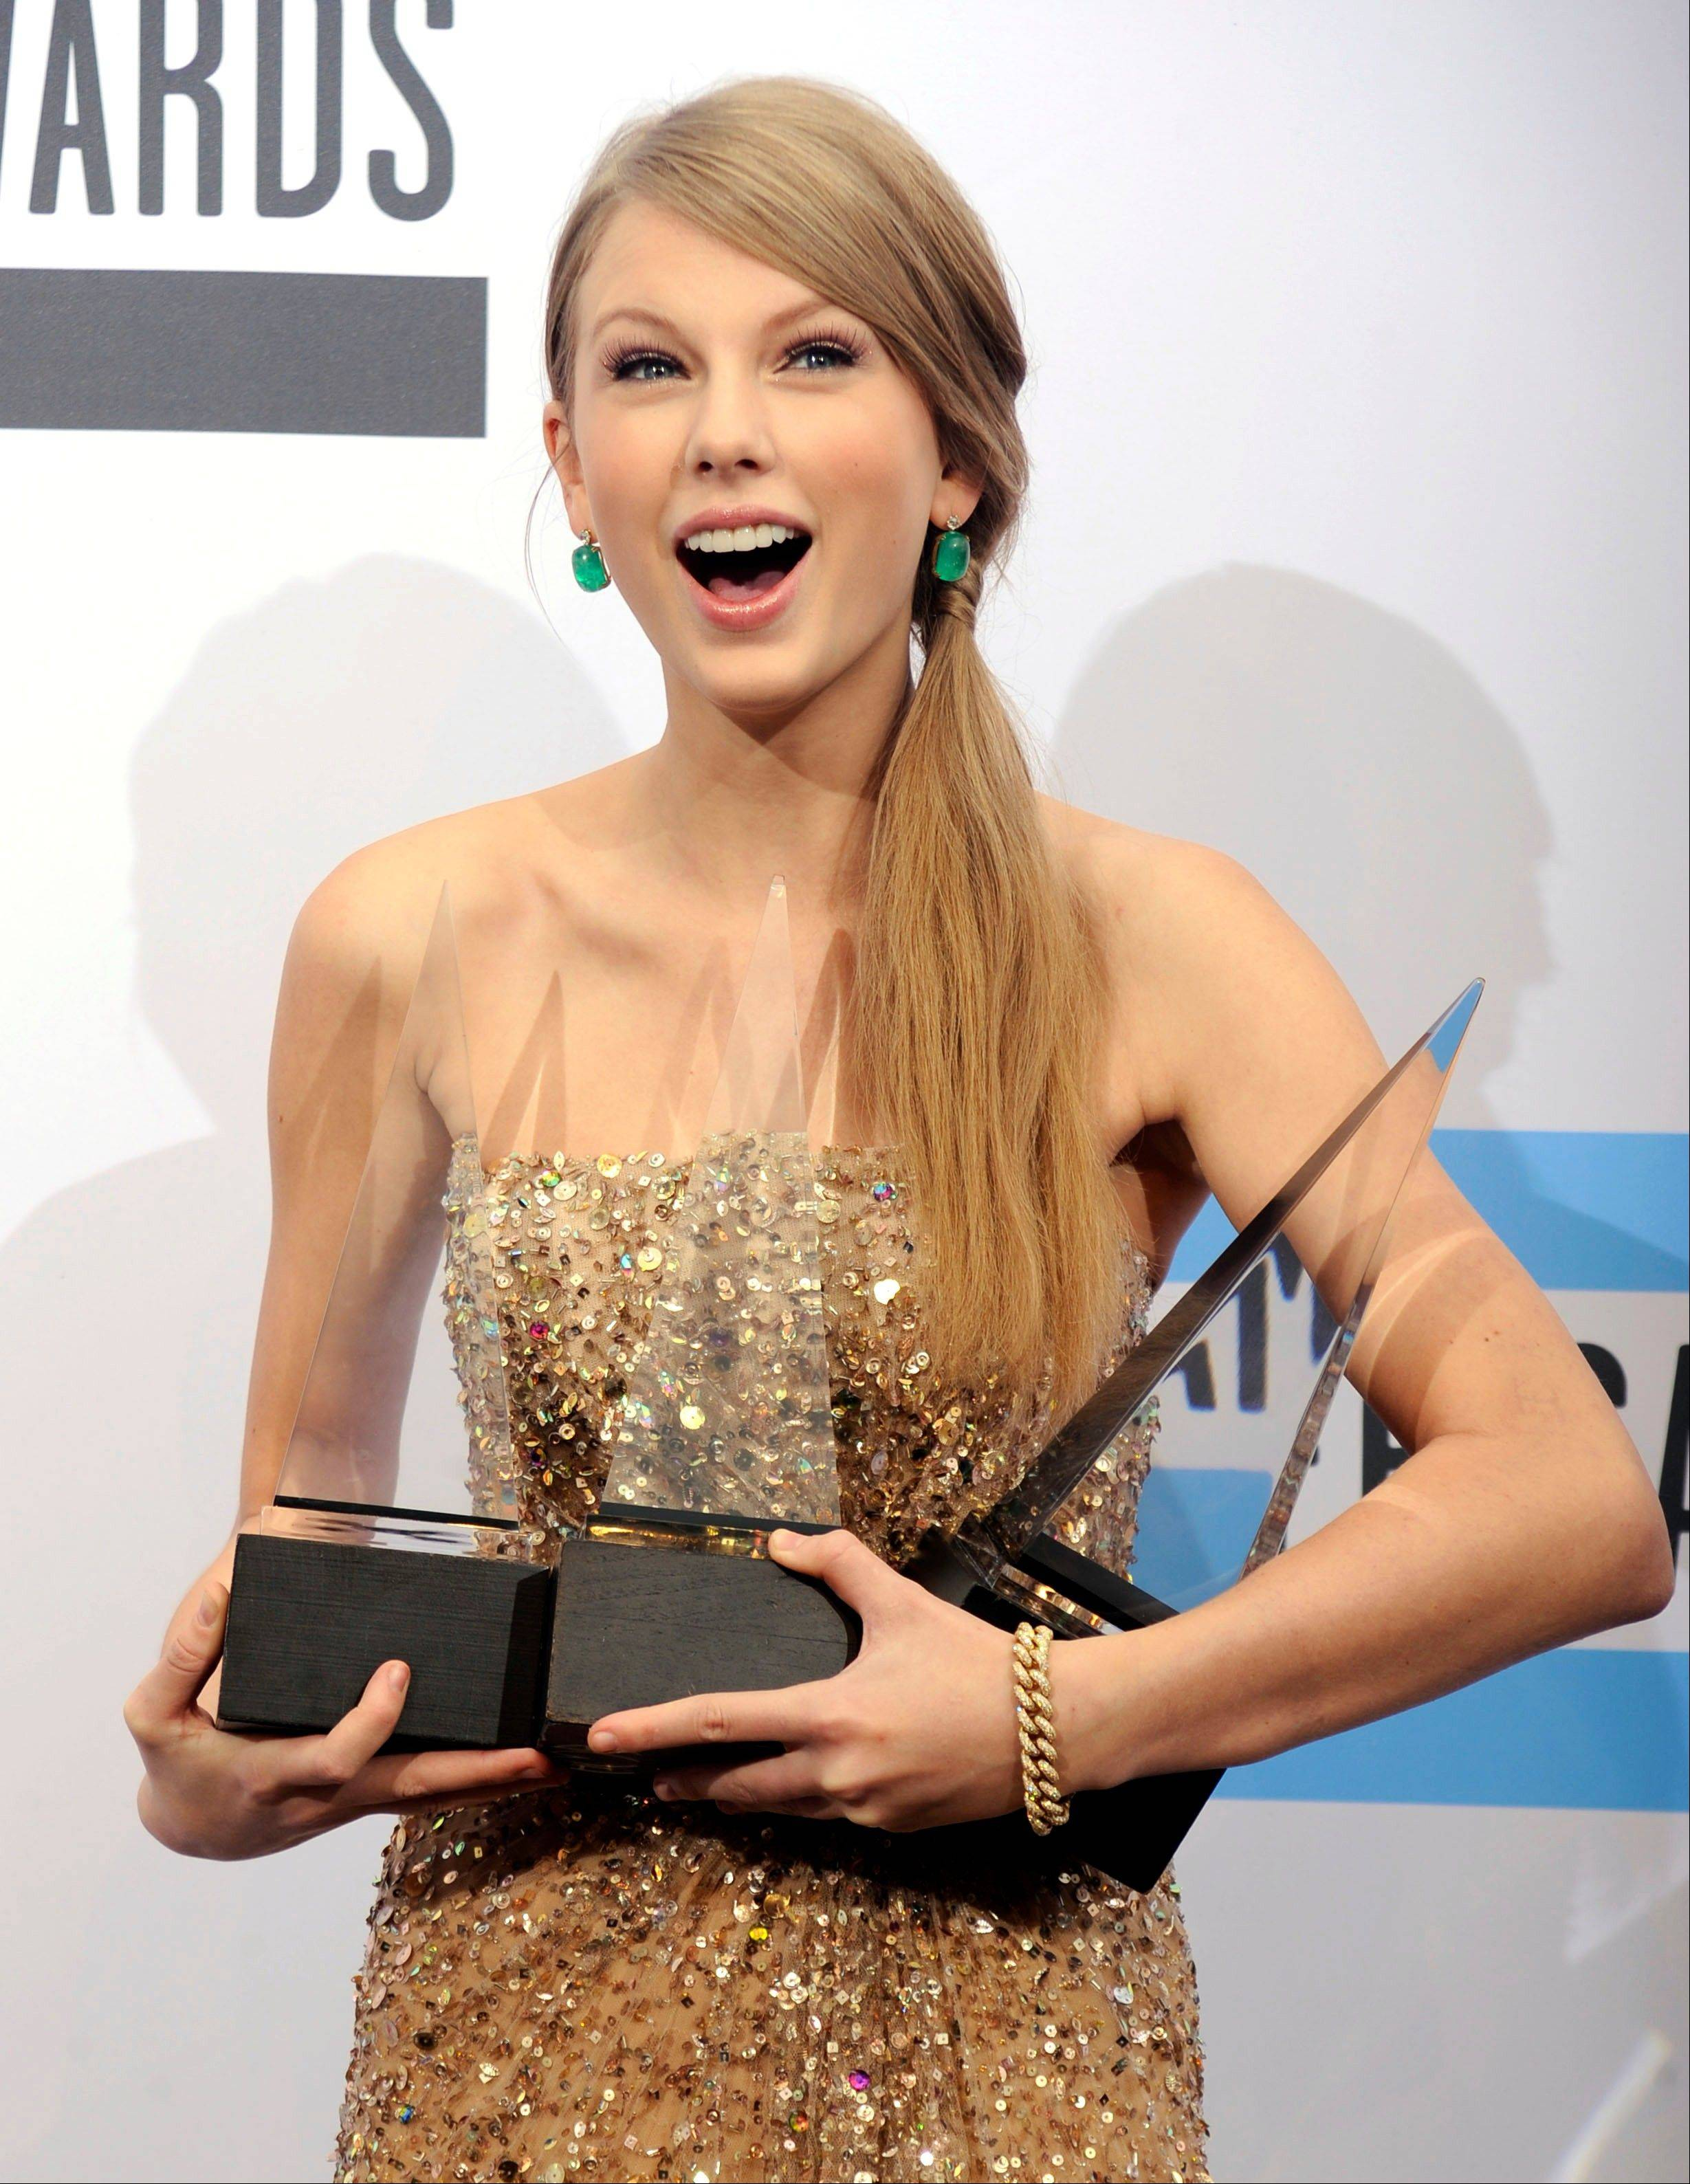 Taylor Swift poses backstage with the awards for country favorite female artist, country favorite album, and artist of the year at the 39th Annual American Music Awards on Sunday, Nov. 20, 2011 in Los Angeles.